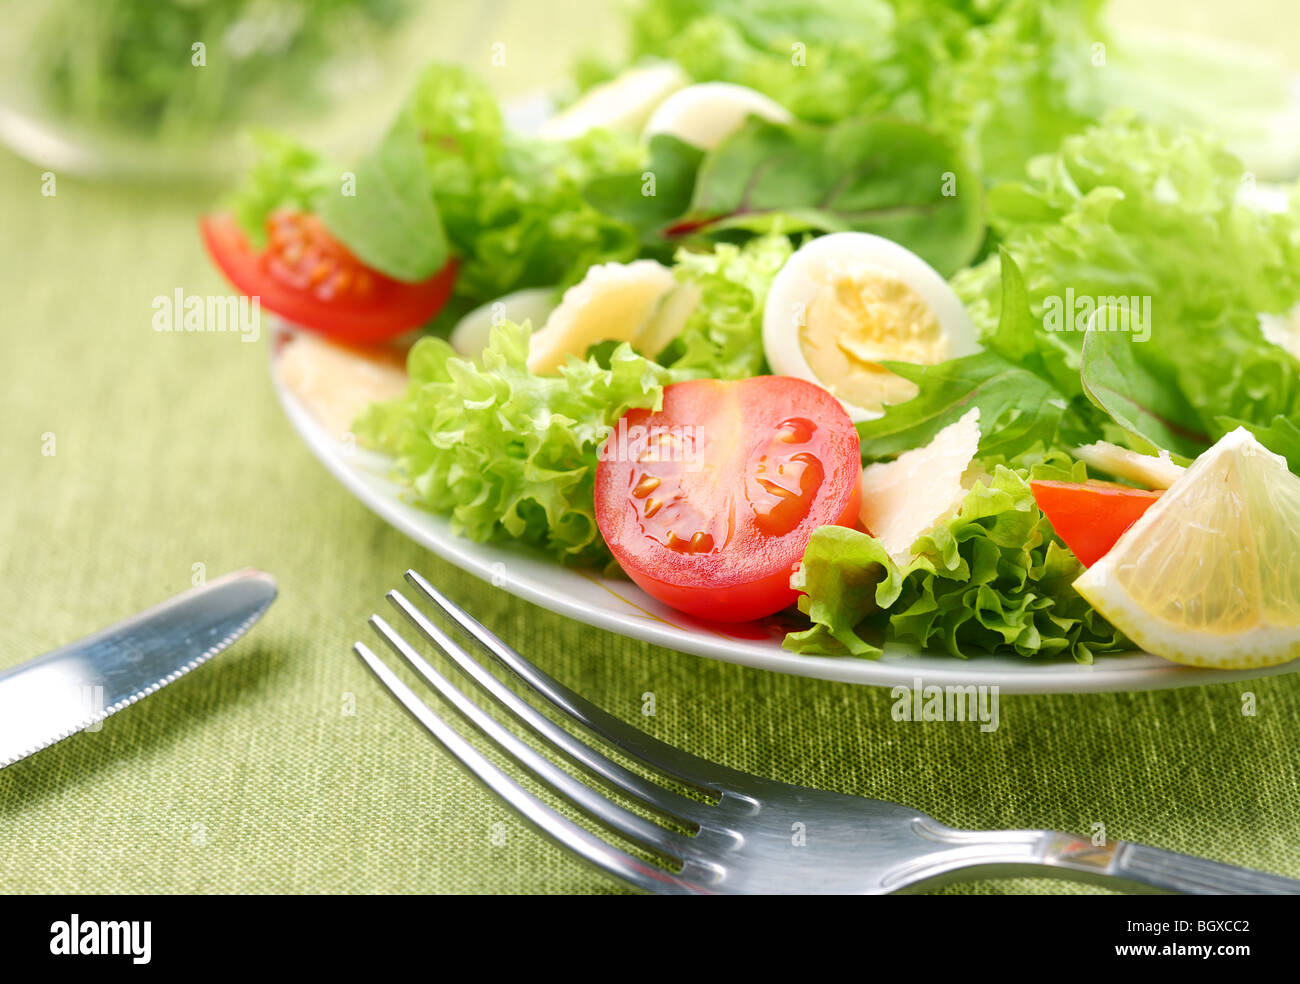 Fresh salad with tomato and quail eggs in a white bowl on a green tablecloth - Stock Image